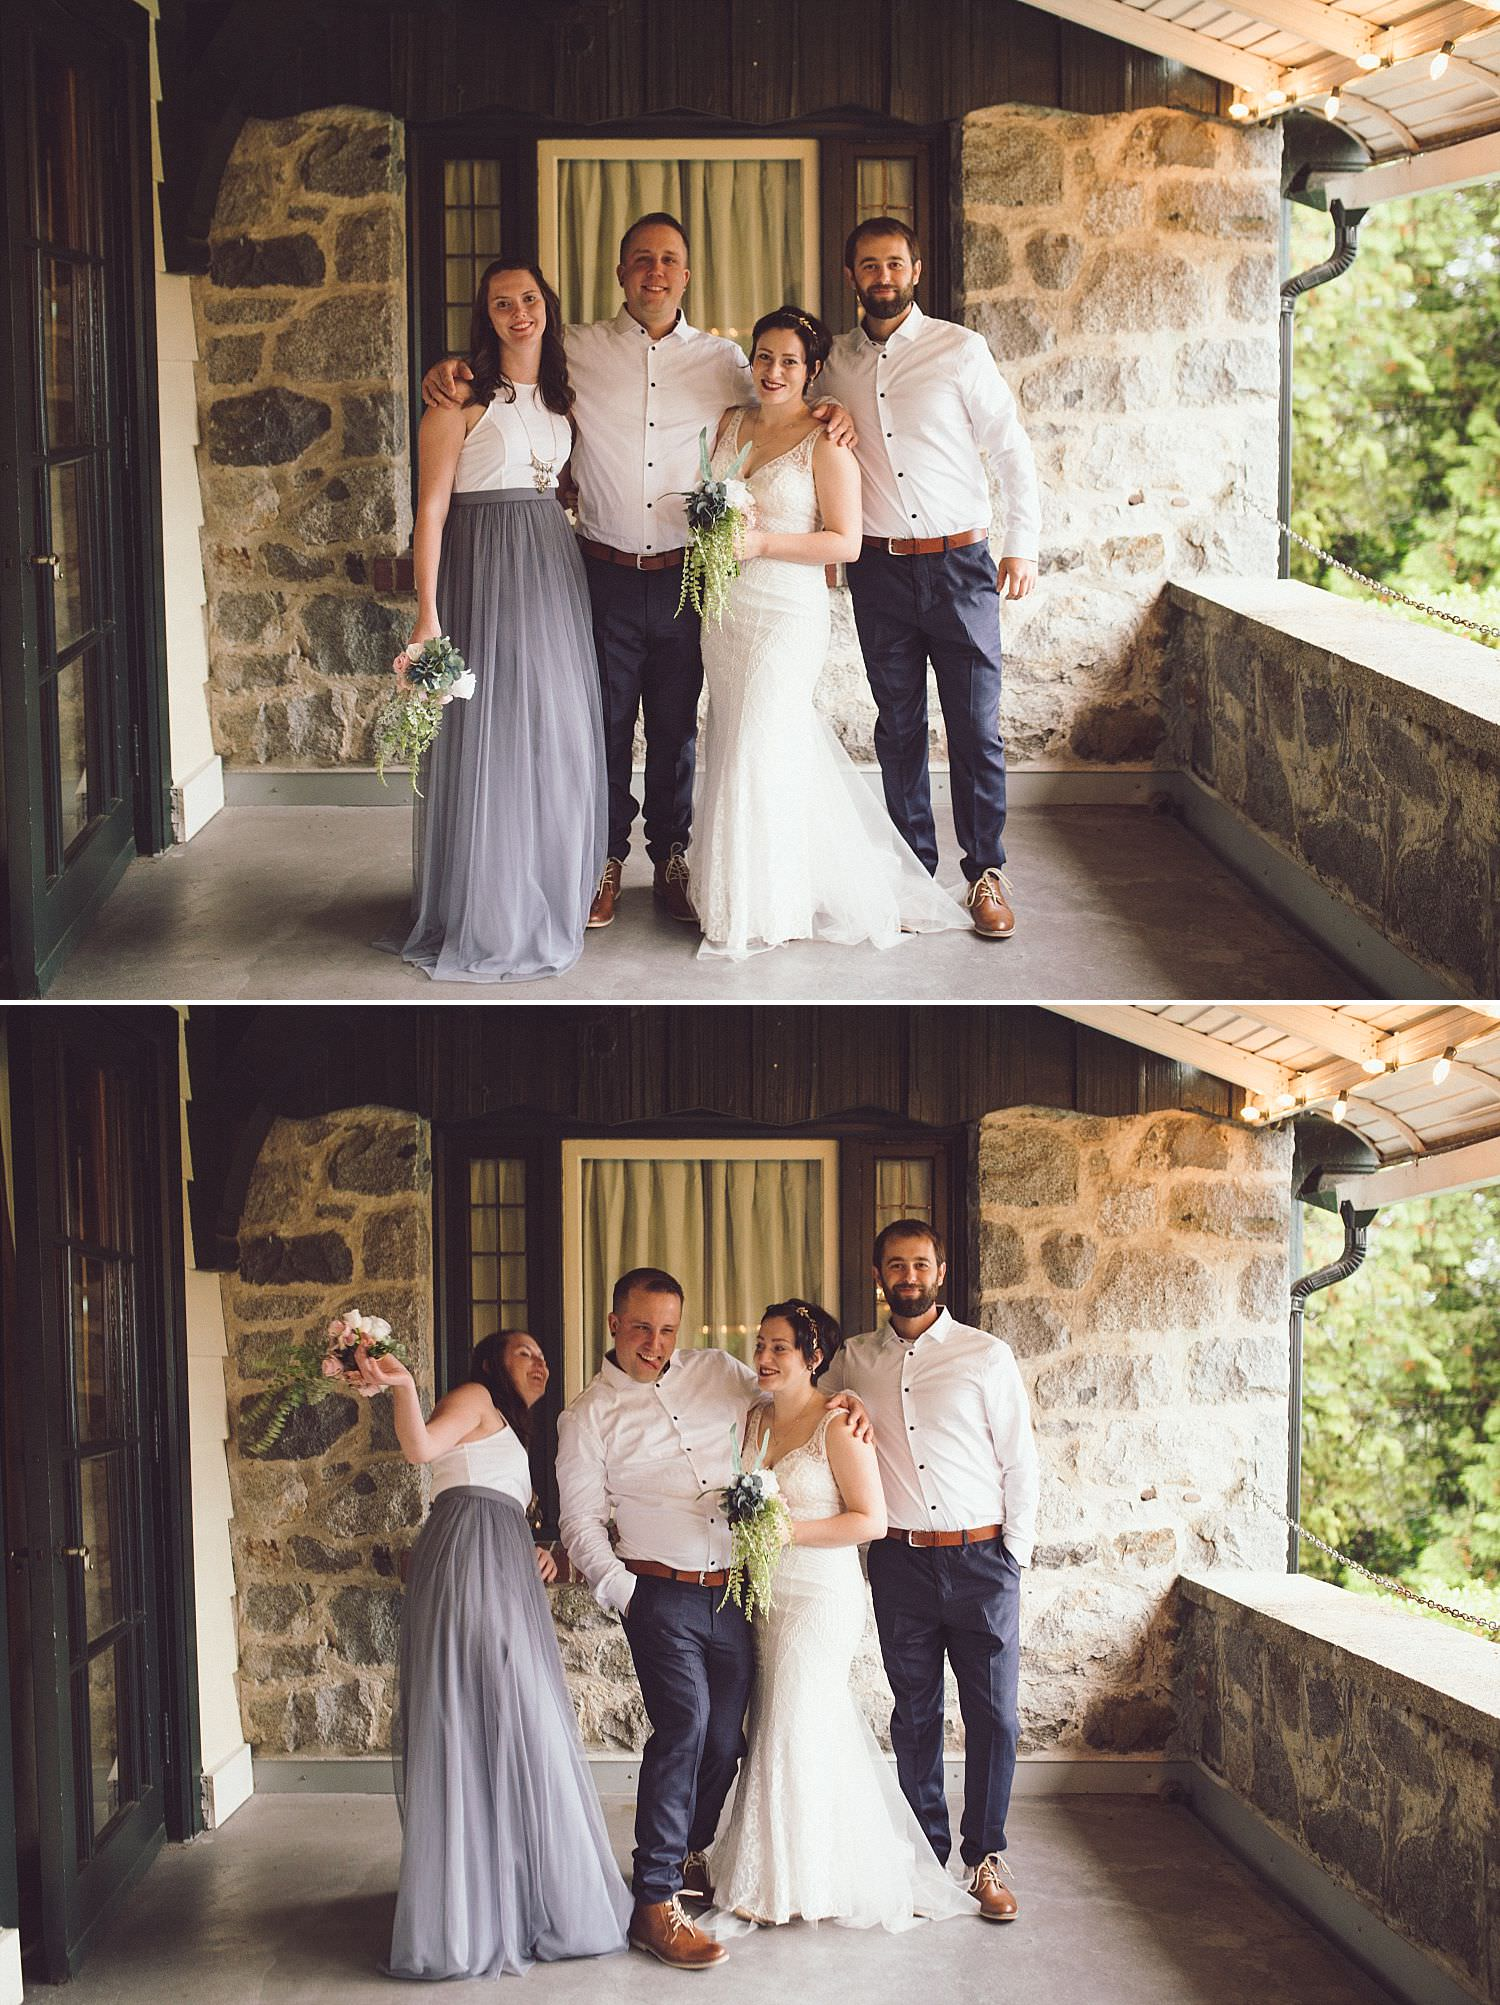 Small wedding party, maid of honour and best man with the married couple